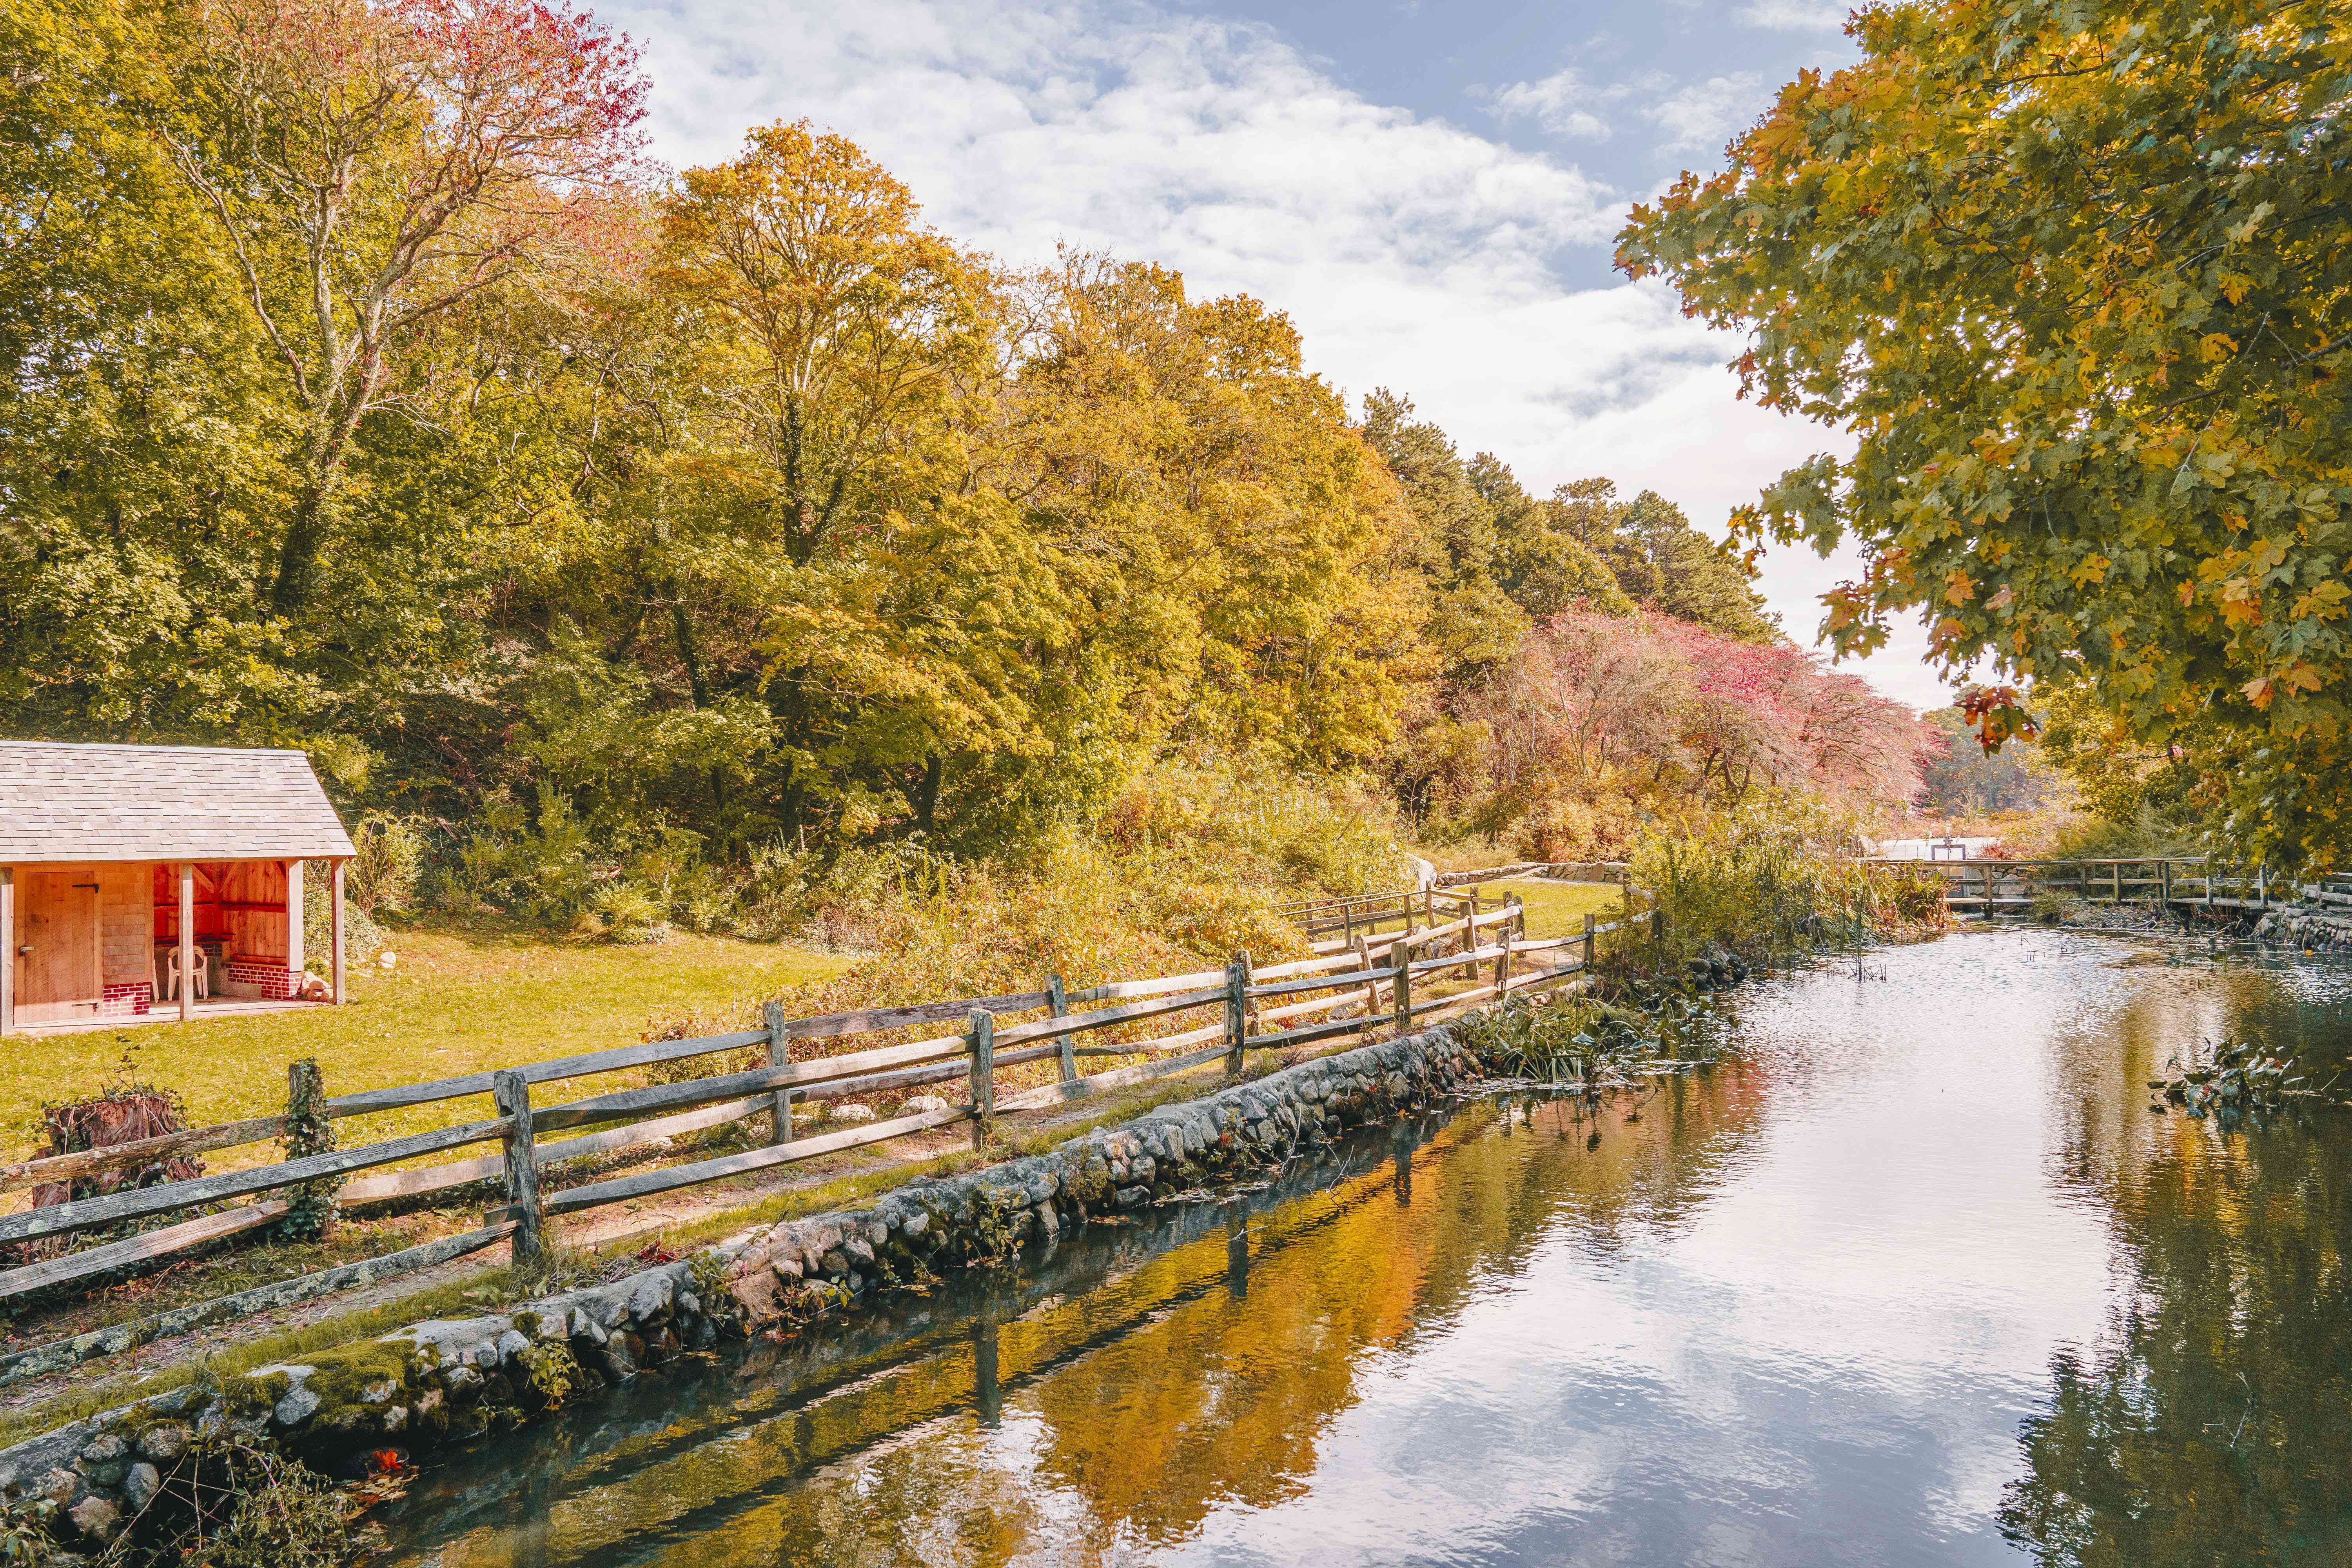 Photo of a river lined with trees with colorful leaves and a small wooden shed